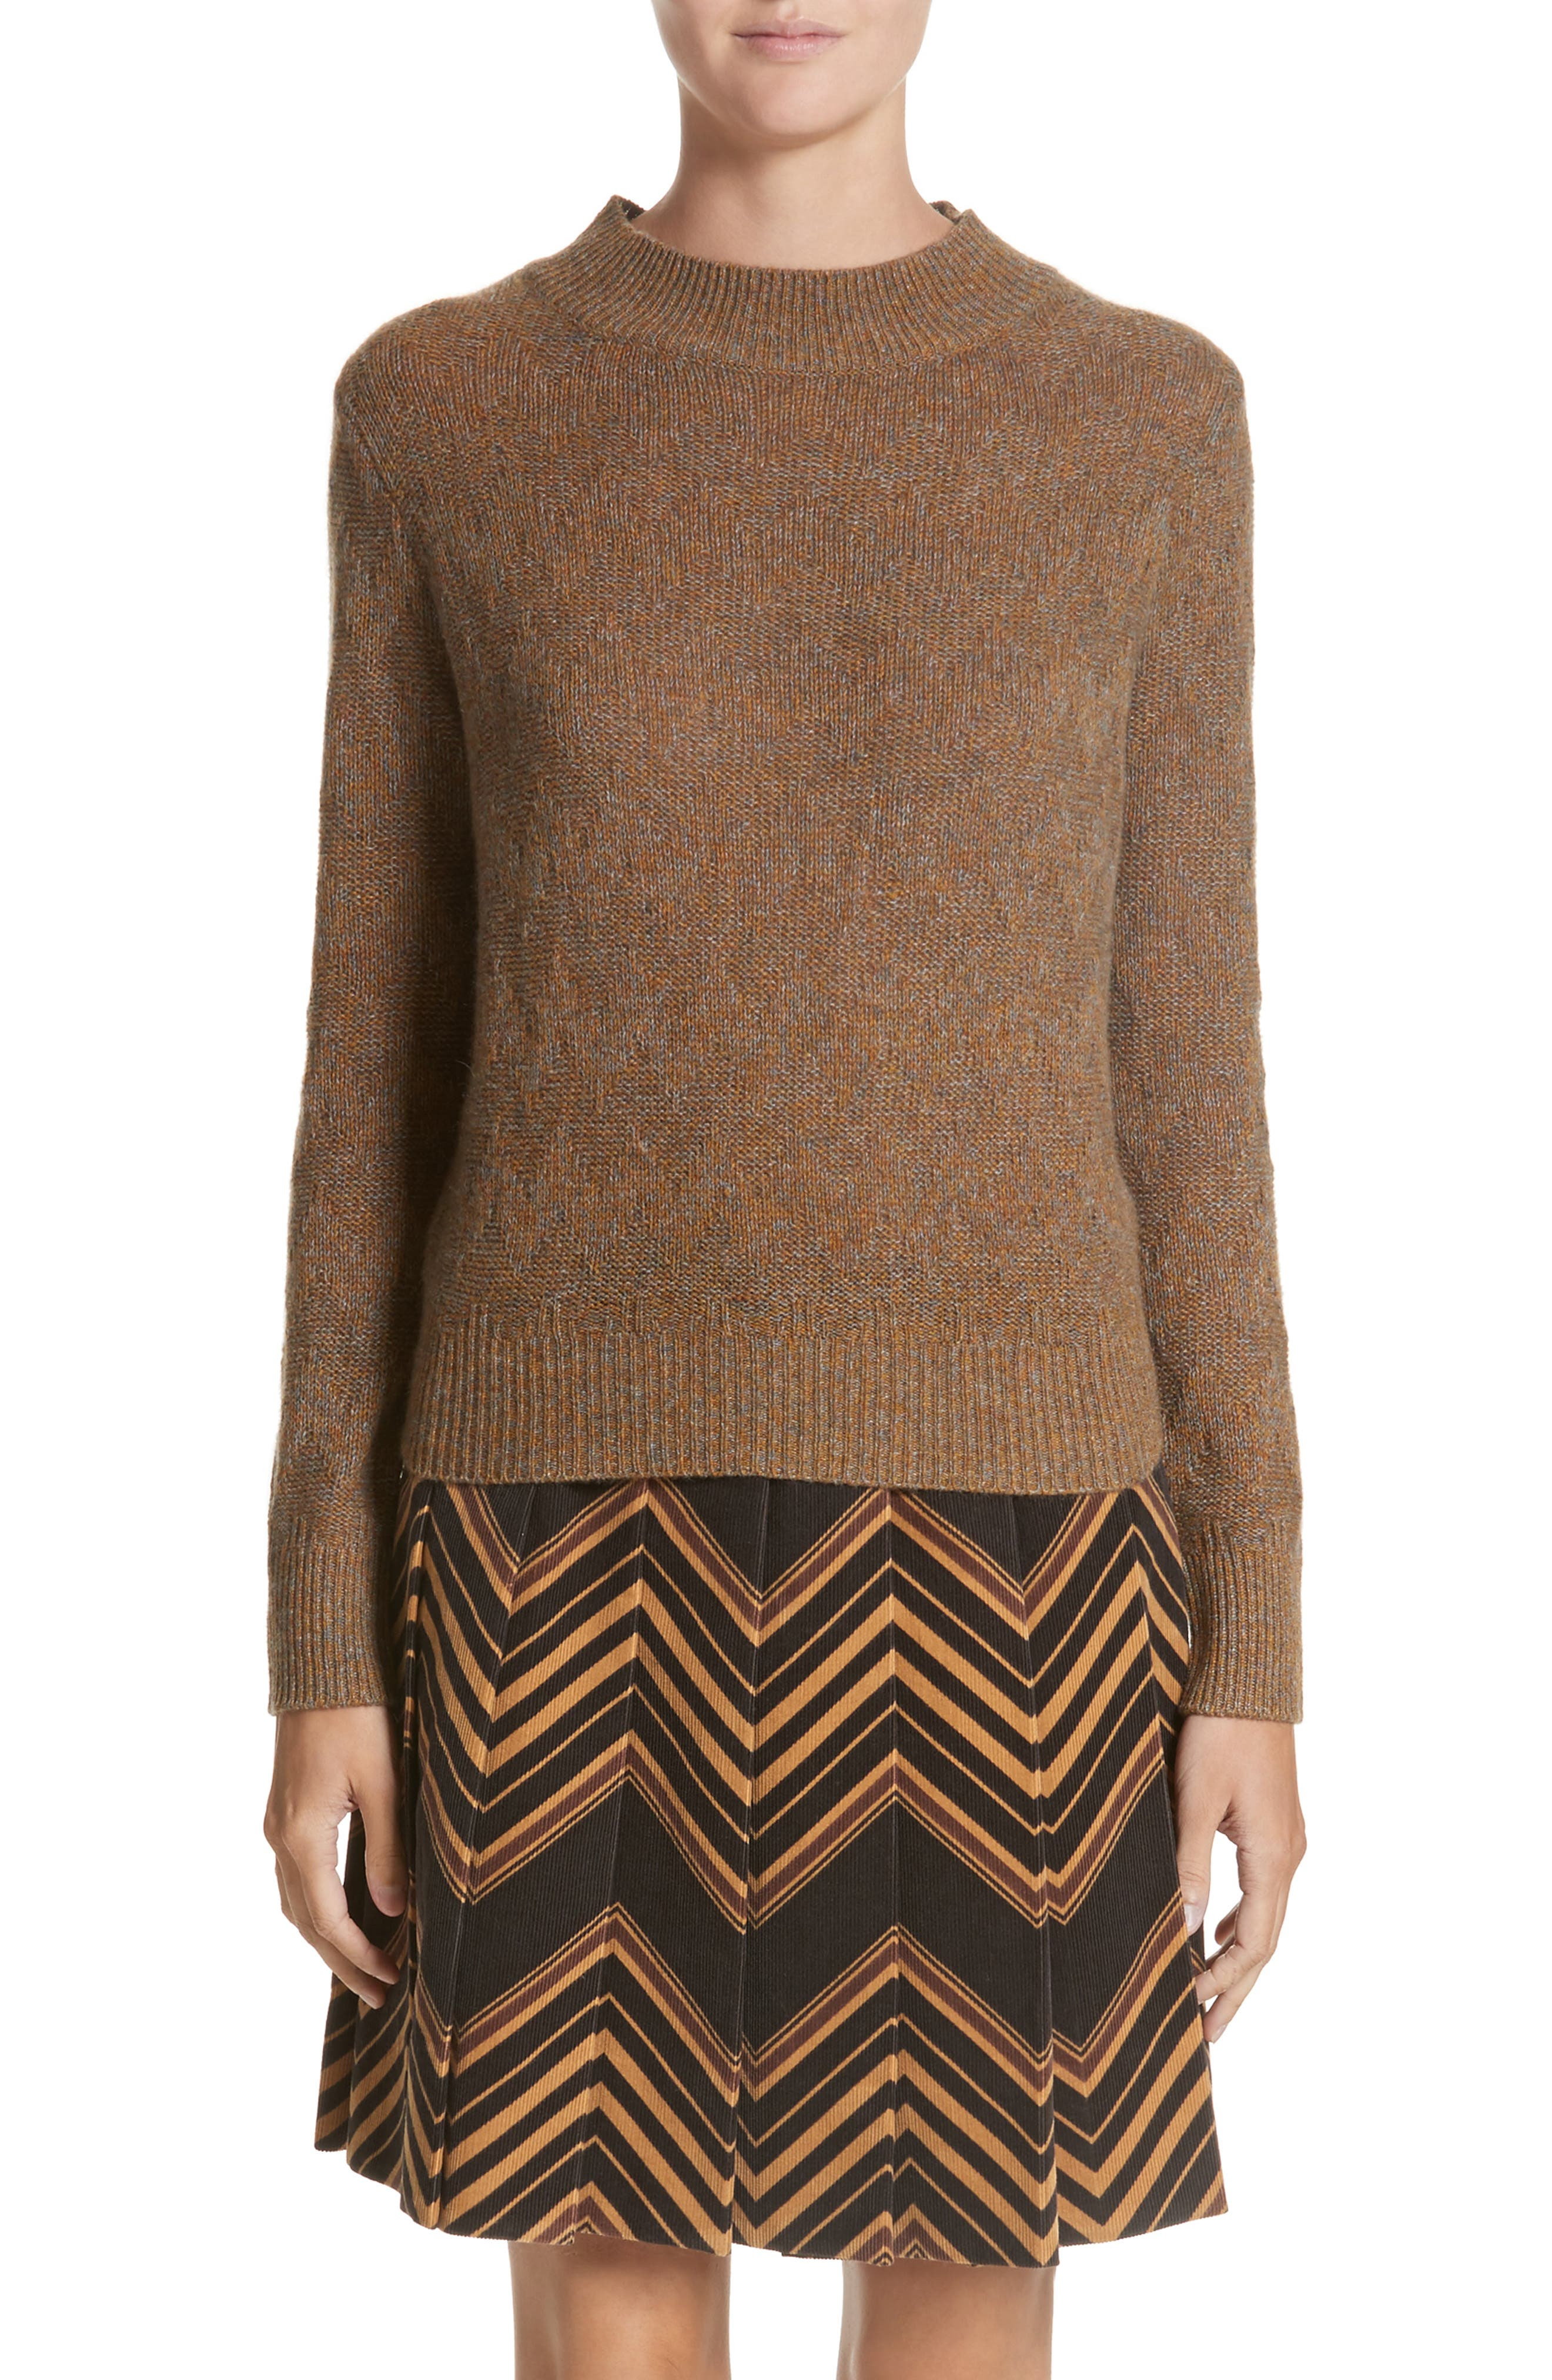 MARC JACOBS Chevron Knit Cashmere Sweater